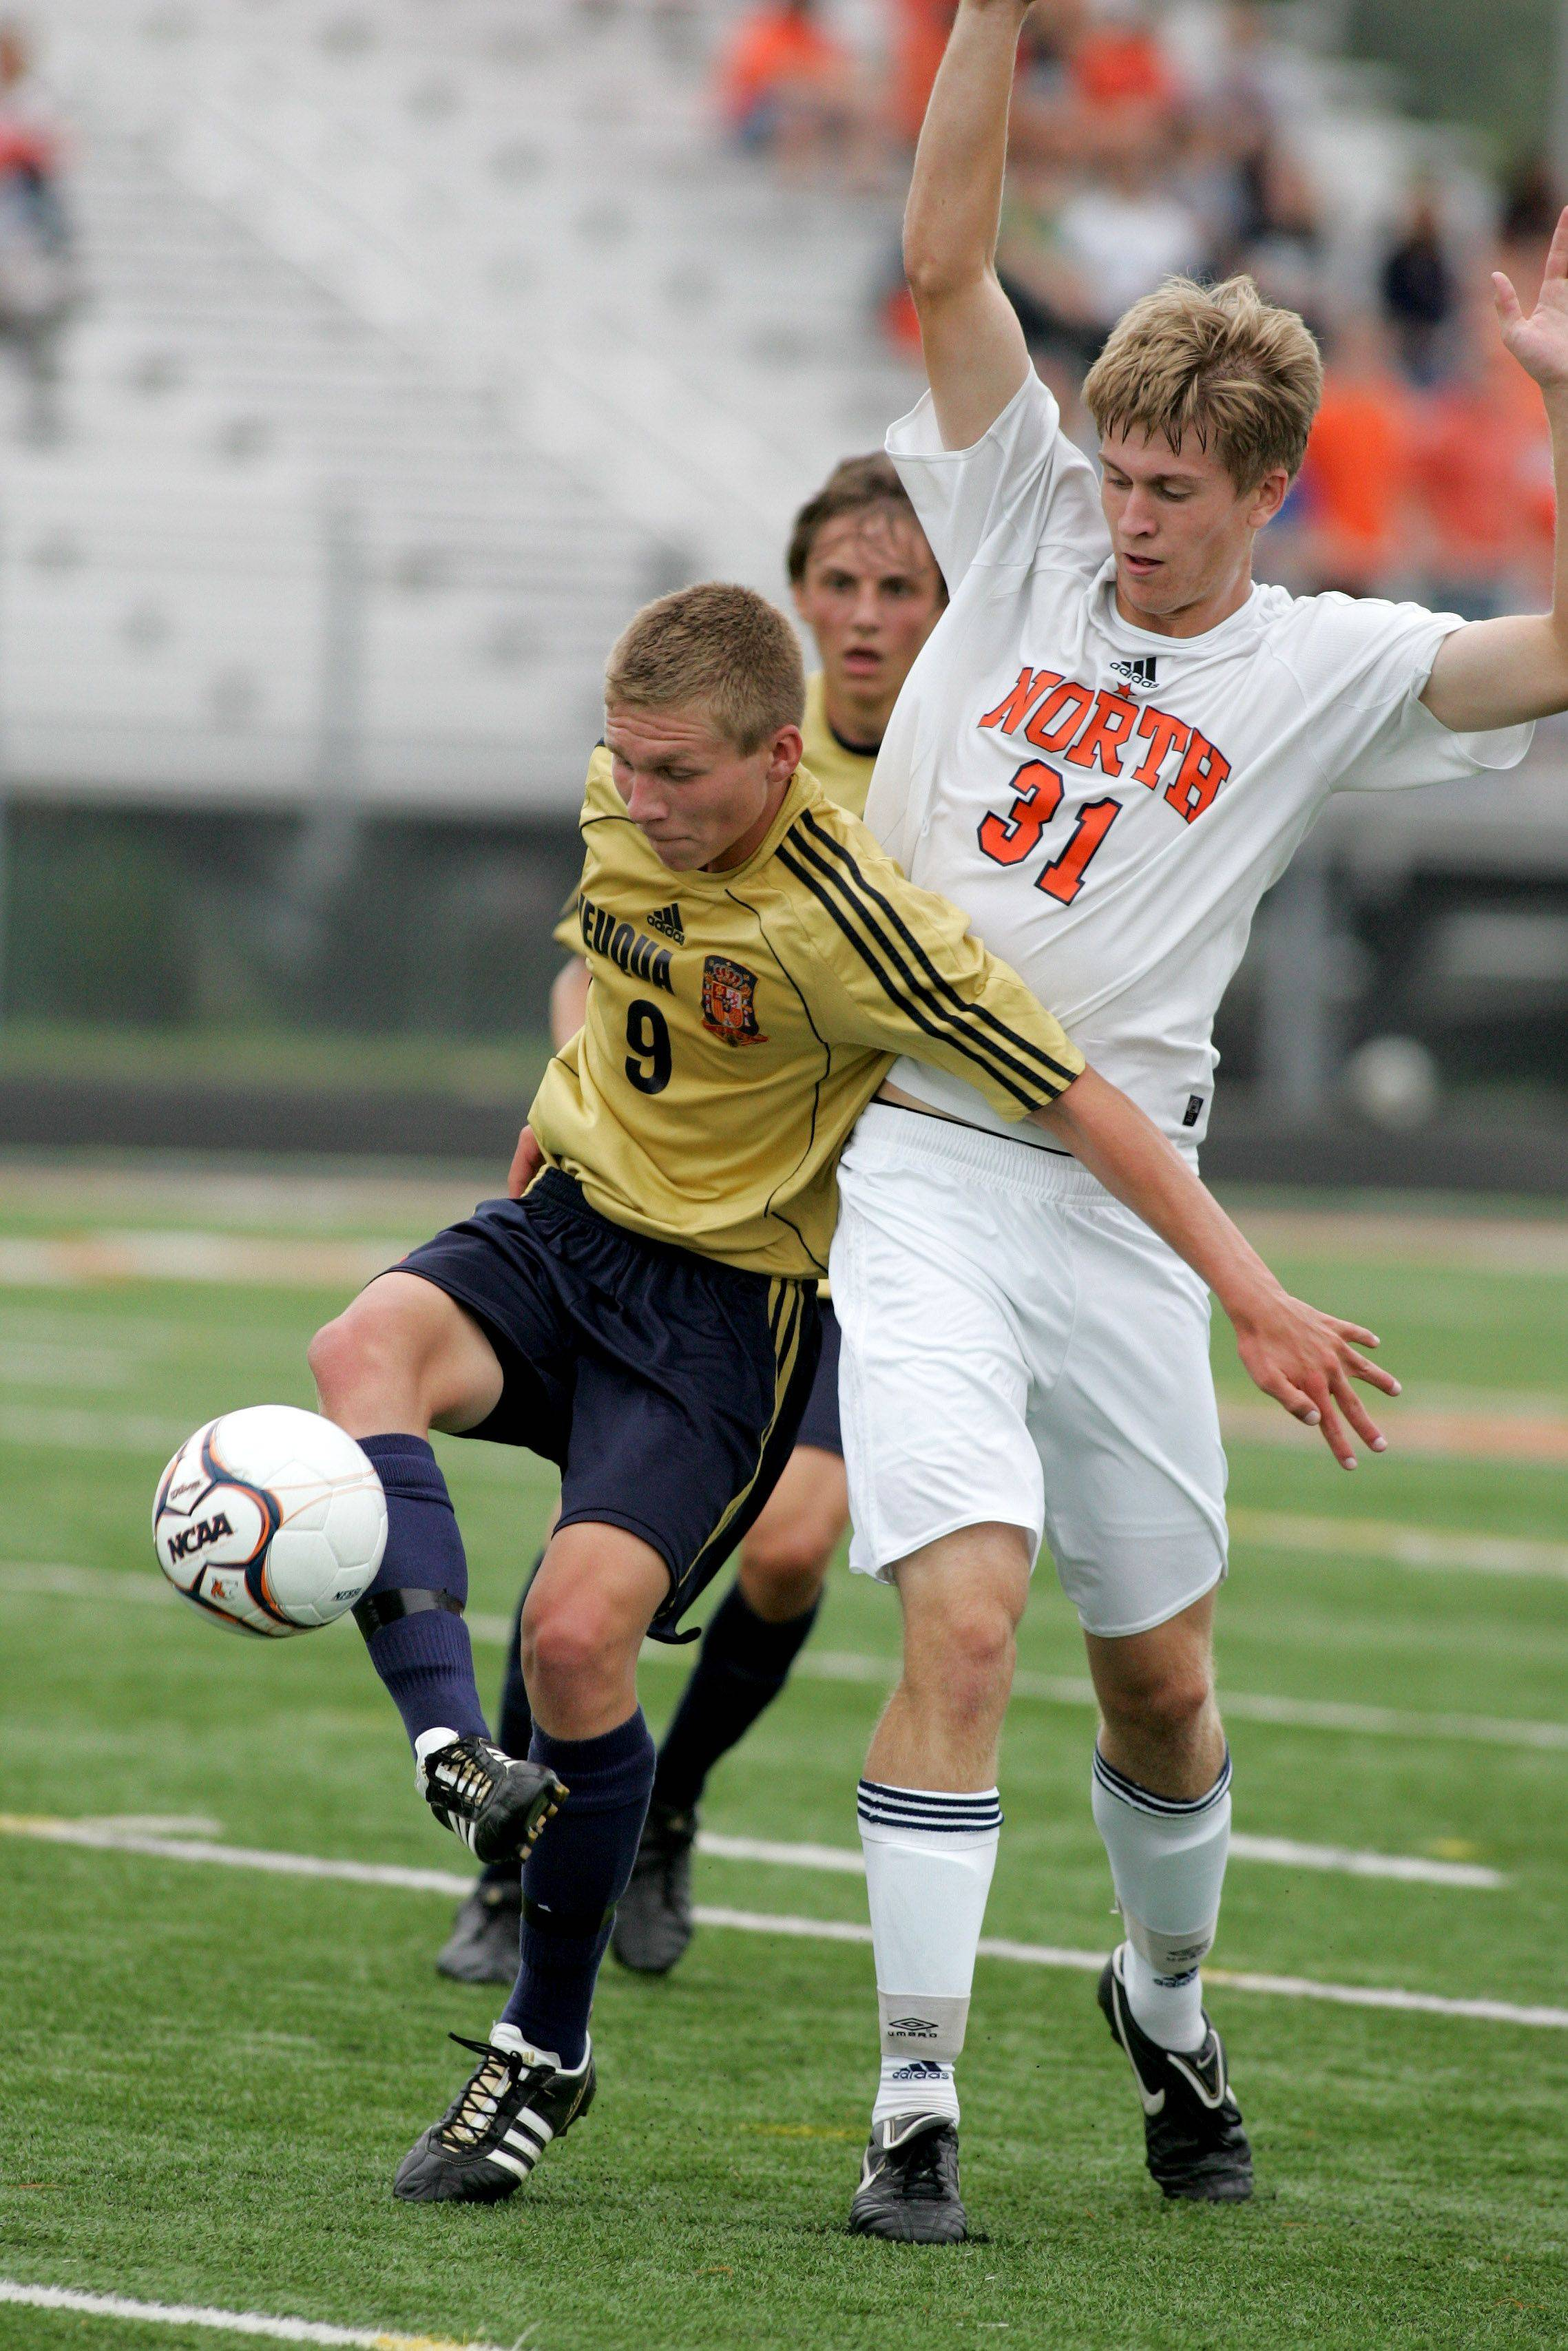 Alex Vanags, left of Neuqua Valley and Kyle Lindberg, right of Naperville North in boys soccer action Tuesday in Naperville.